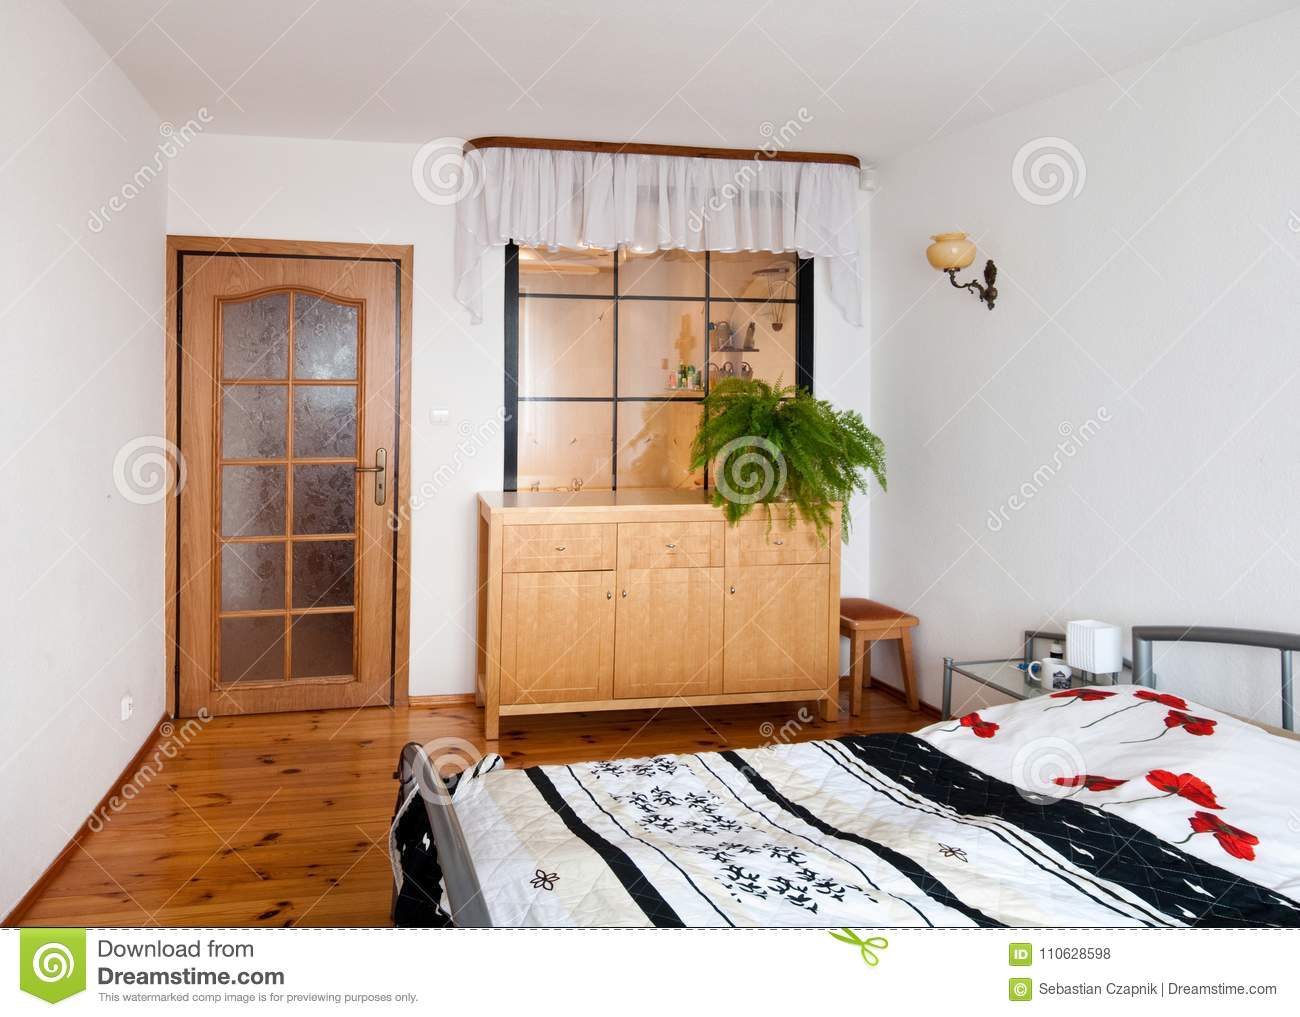 An Elegant Simple Bedroom With Double Bed Wooden Flooring And Timber Cupboard Bright Daylight Home Architecture Design Concept